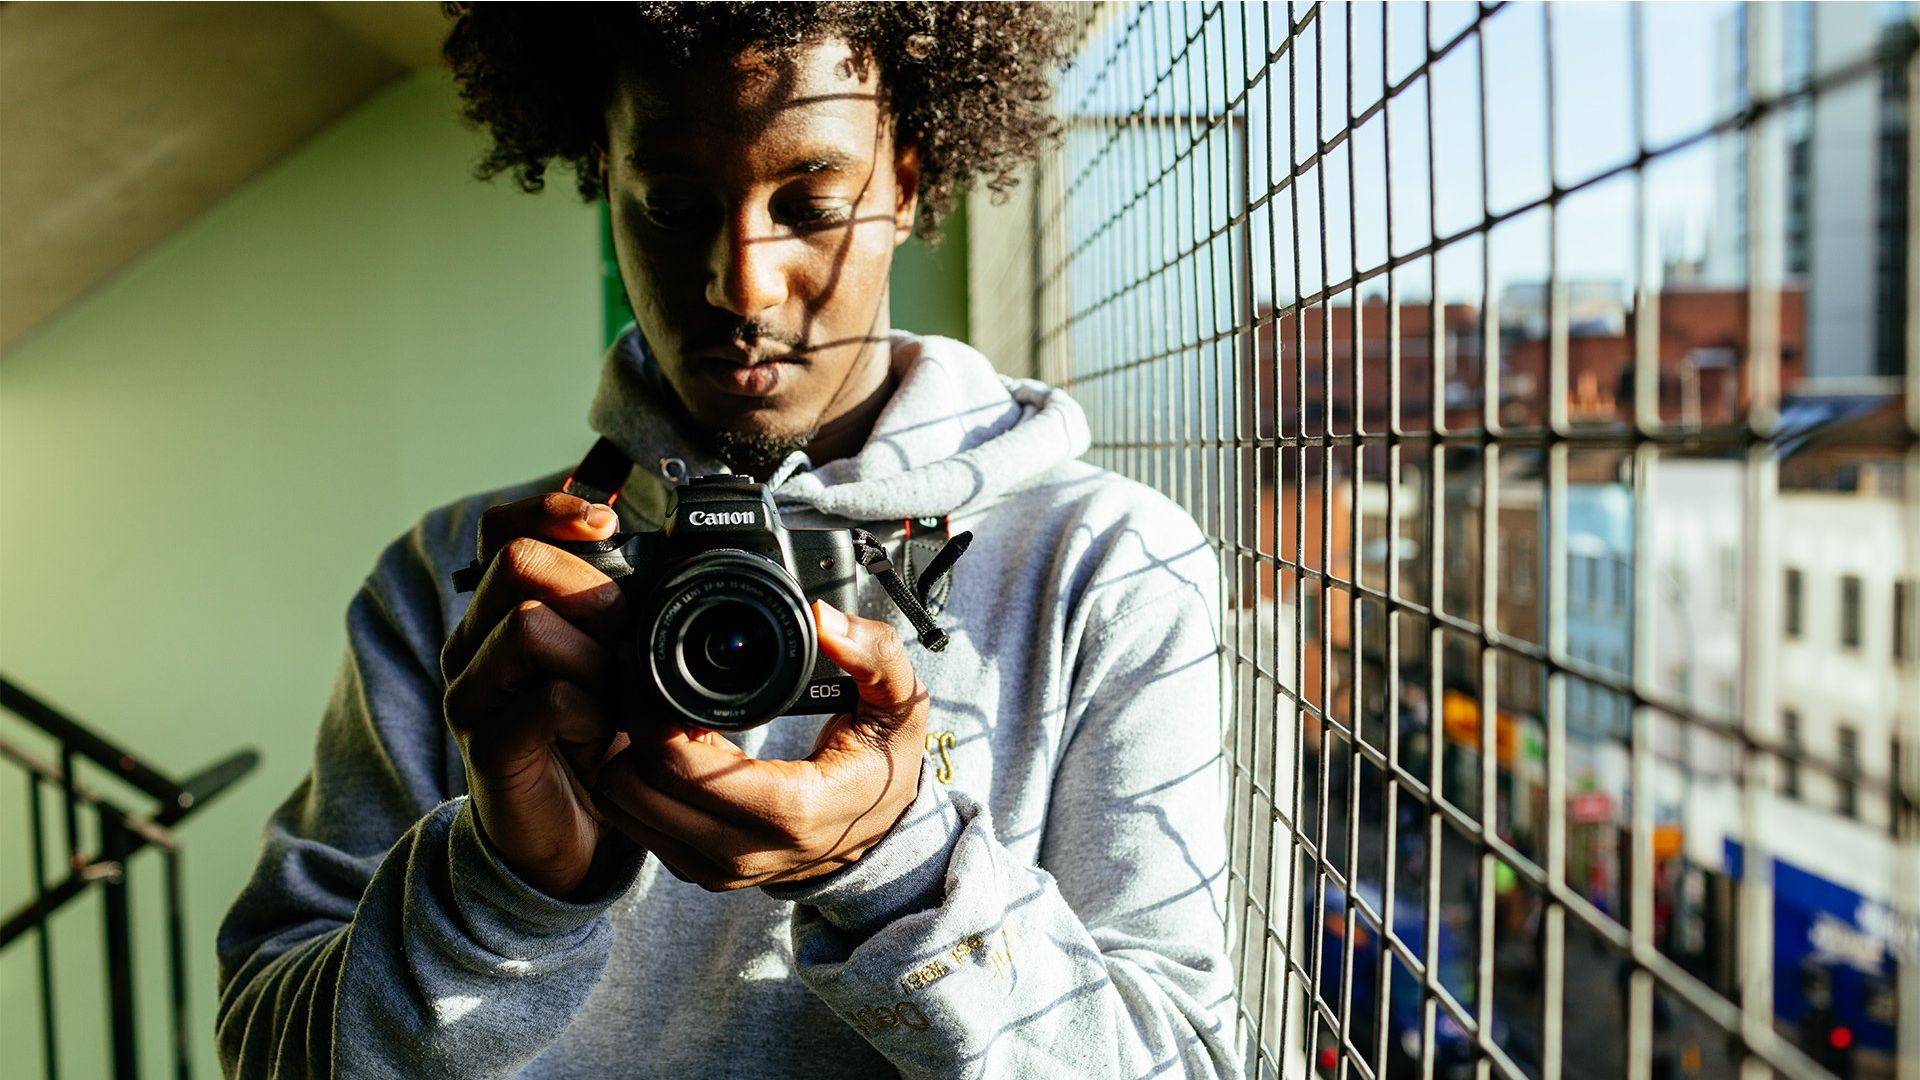 A man holds a Canon camera.